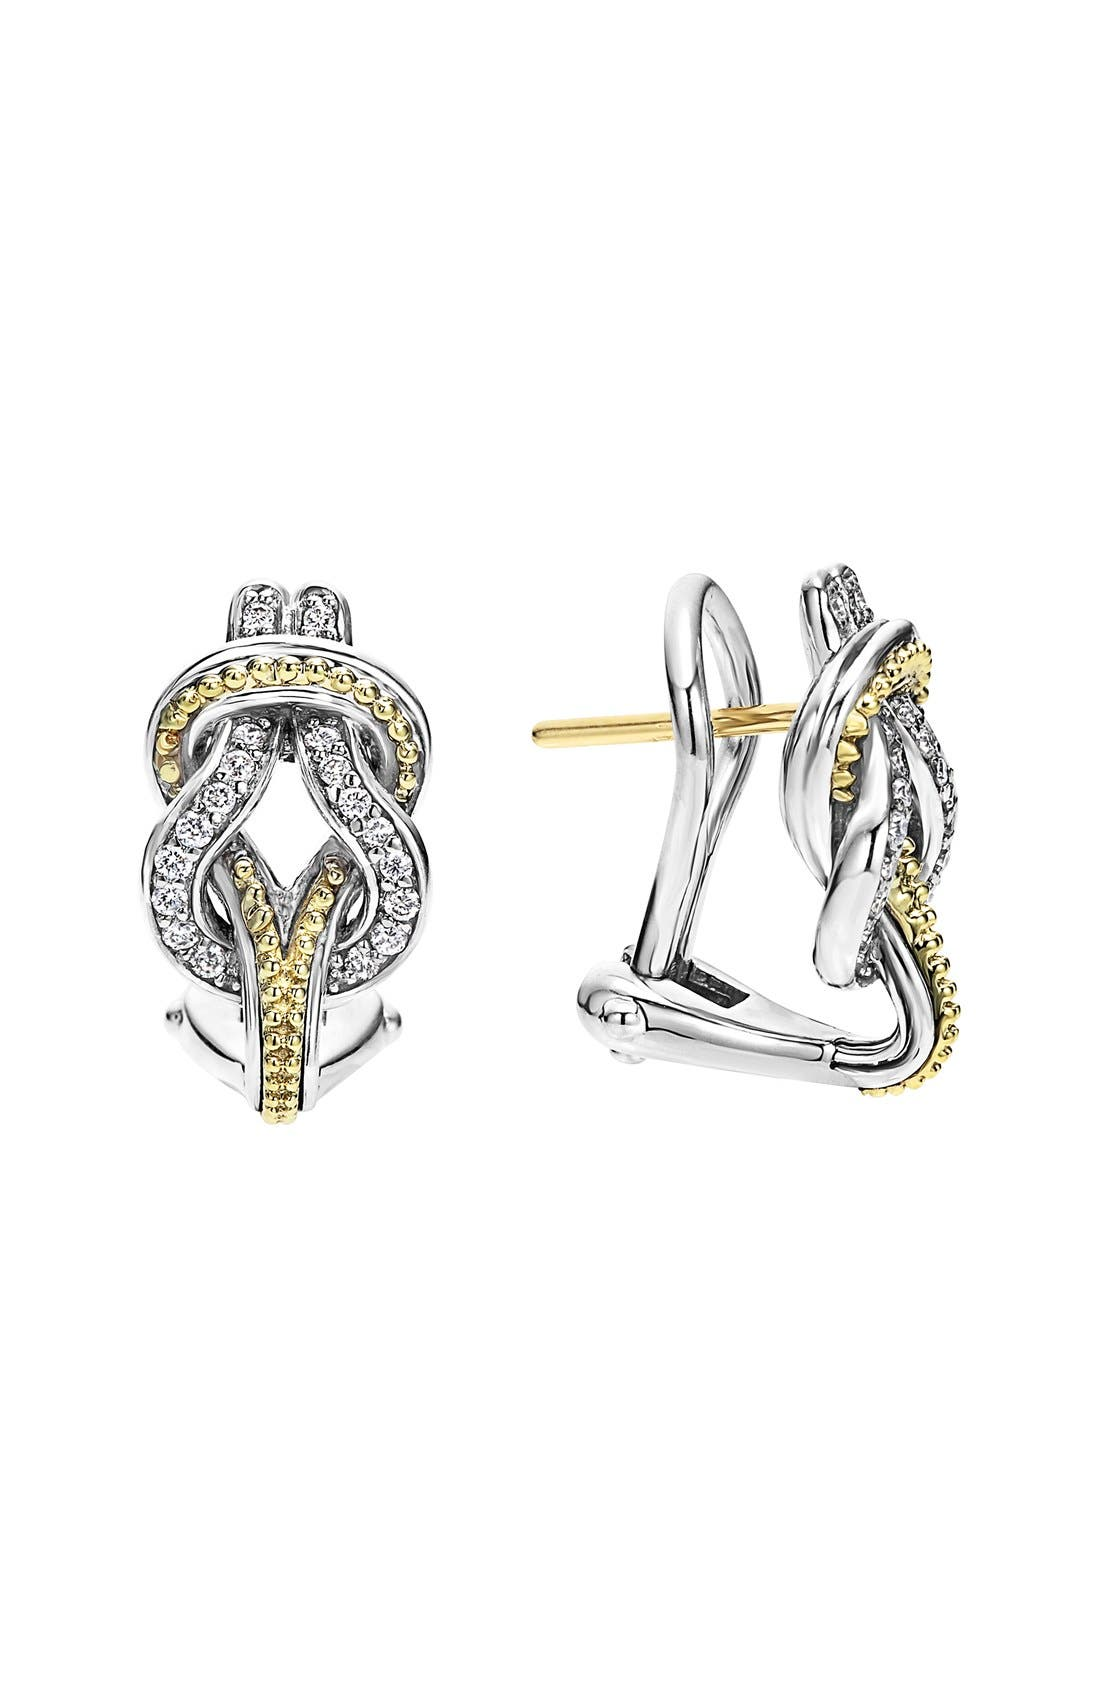 LAGOS Newport Diamond Knot Earrings